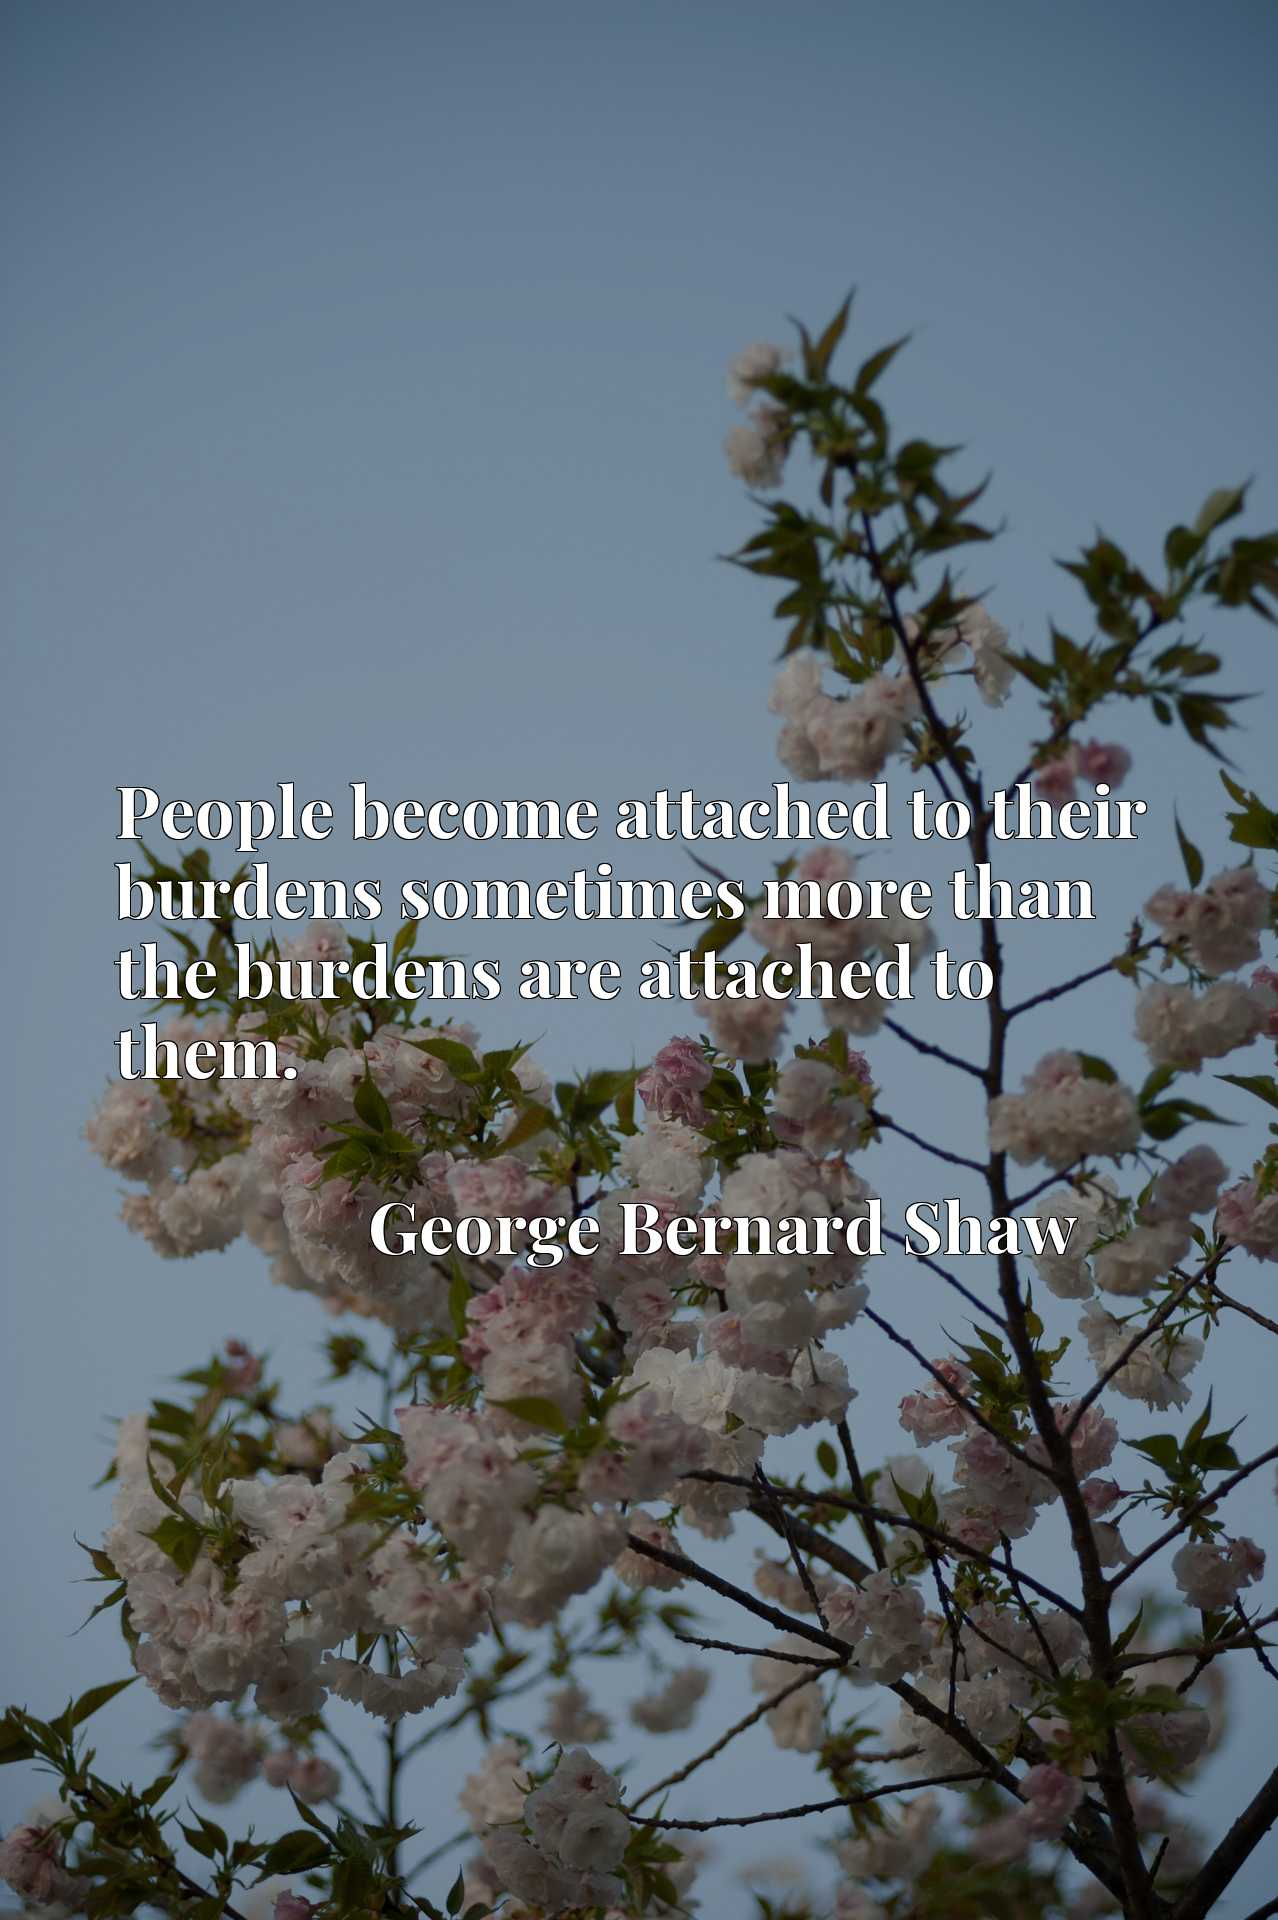 People become attached to their burdens sometimes more than the burdens are attached to them.